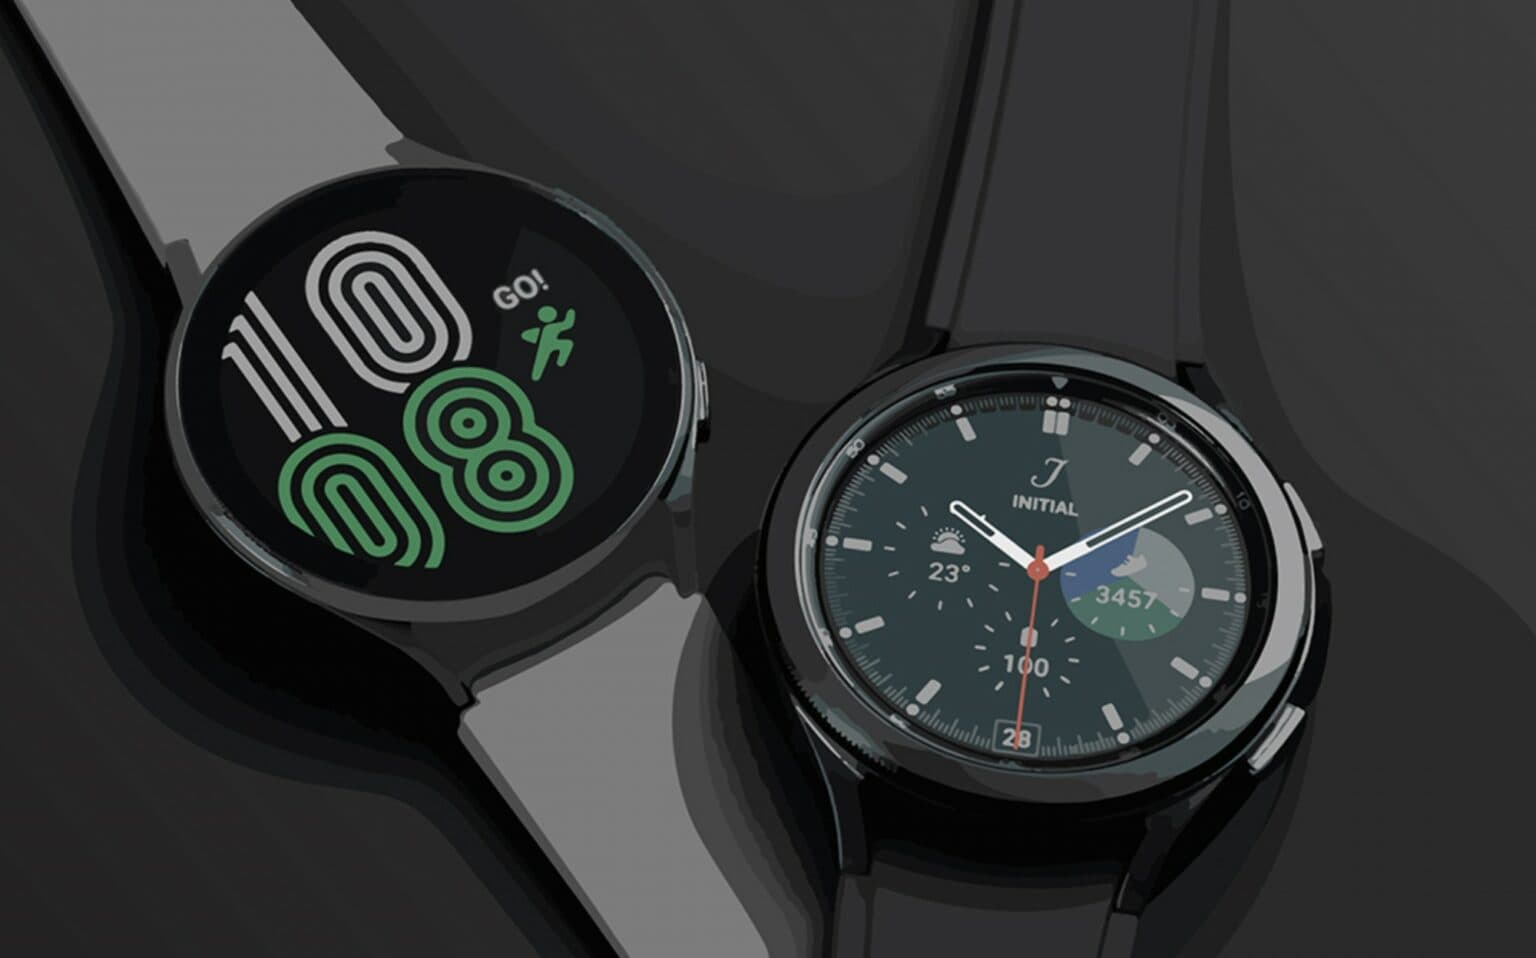 Samsung Galaxy Watch 4 drops iPhone support